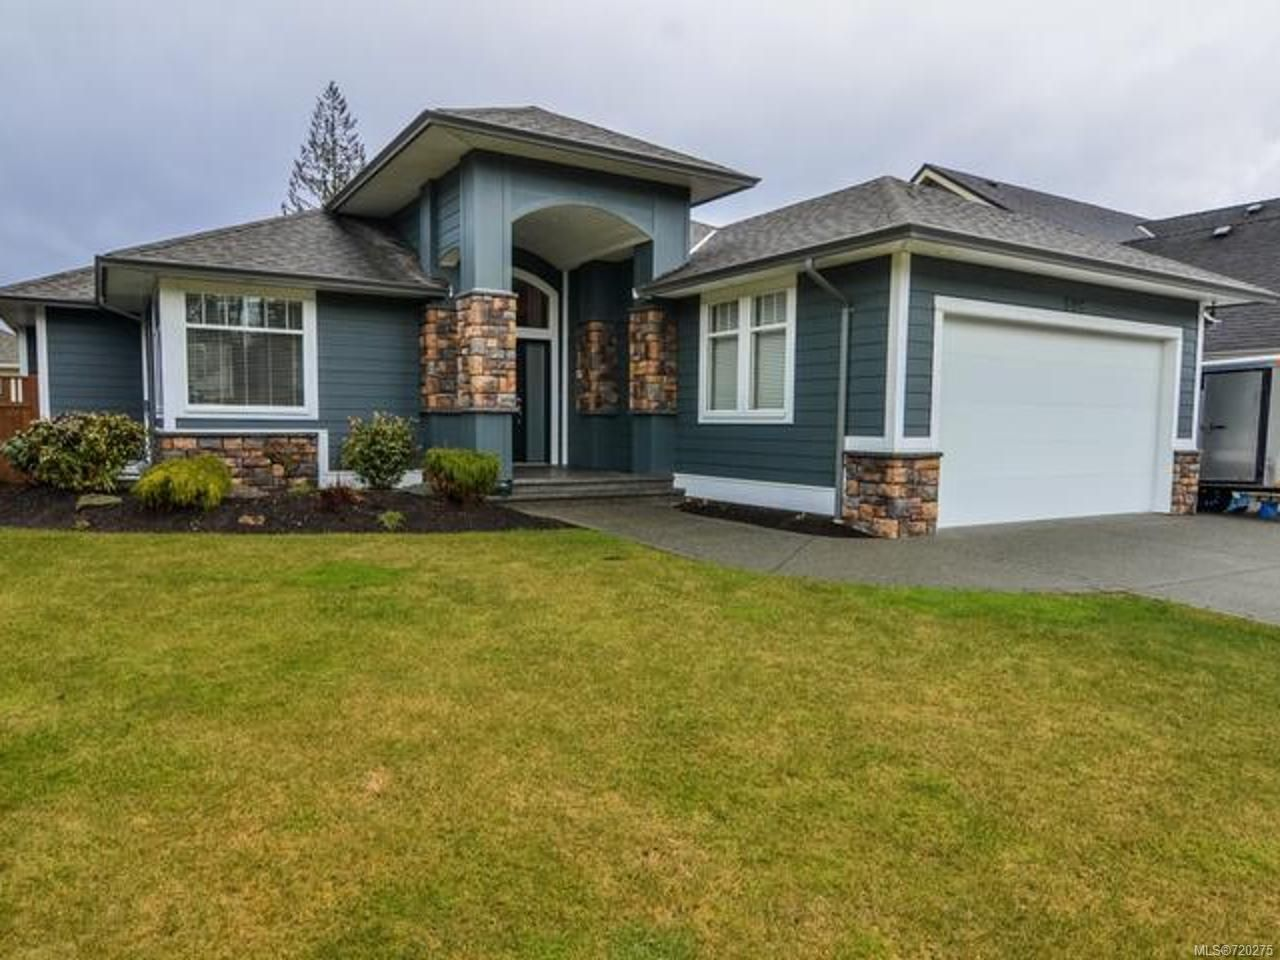 Main Photo: 506 Edgewood Dr in CAMPBELL RIVER: CR Campbell River Central House for sale (Campbell River)  : MLS®# 720275